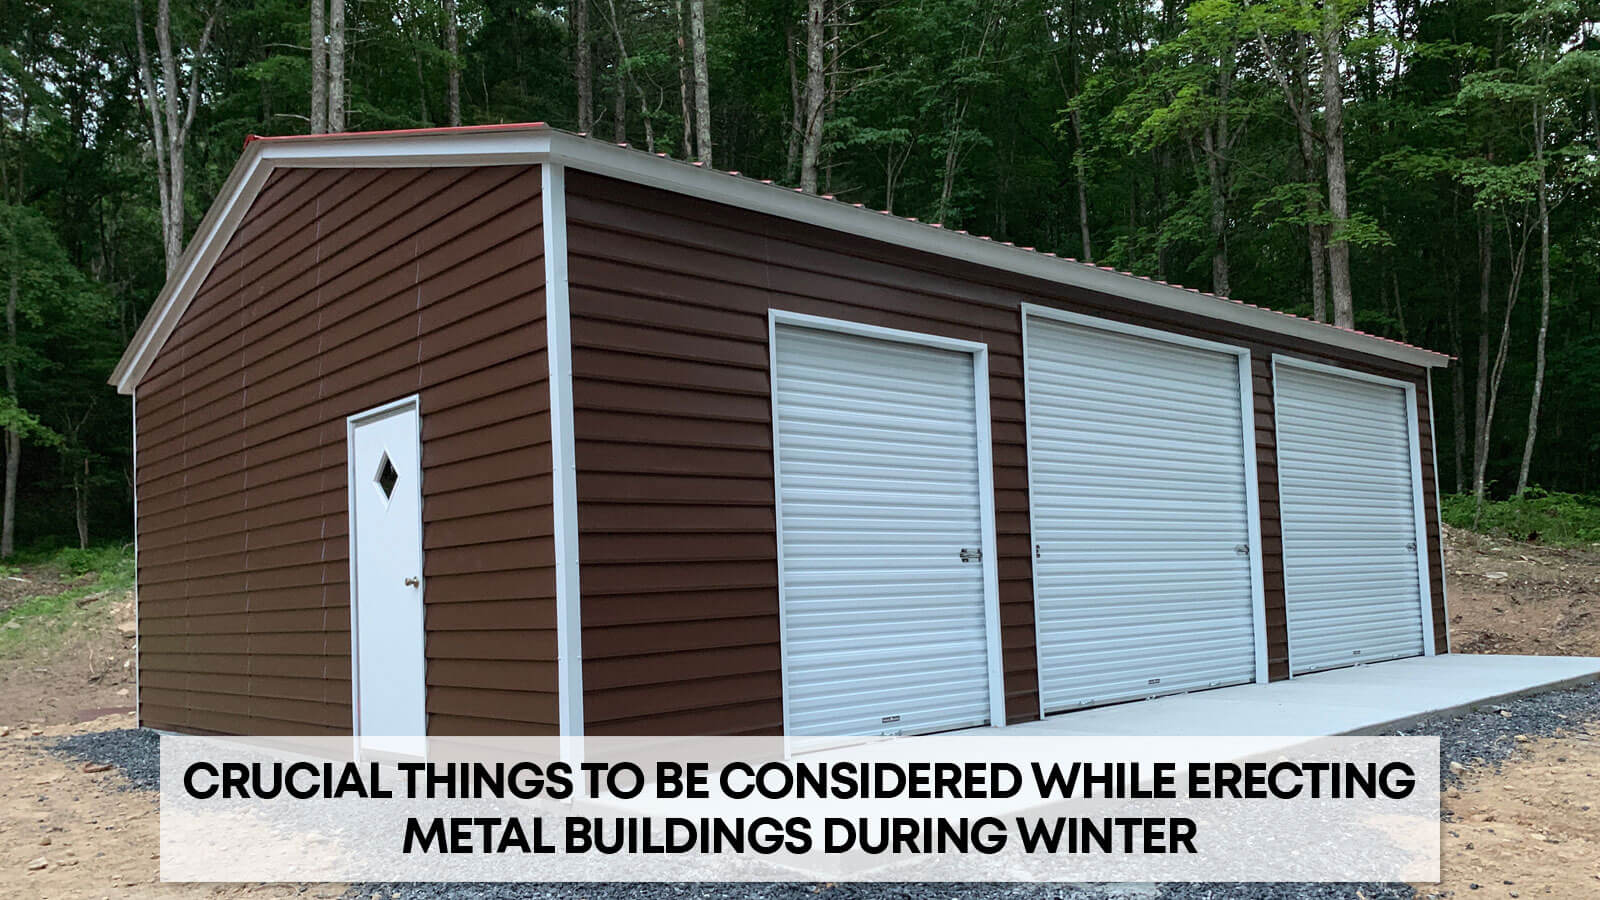 Crucial Things to be Considered While Erecting Metal Buildings